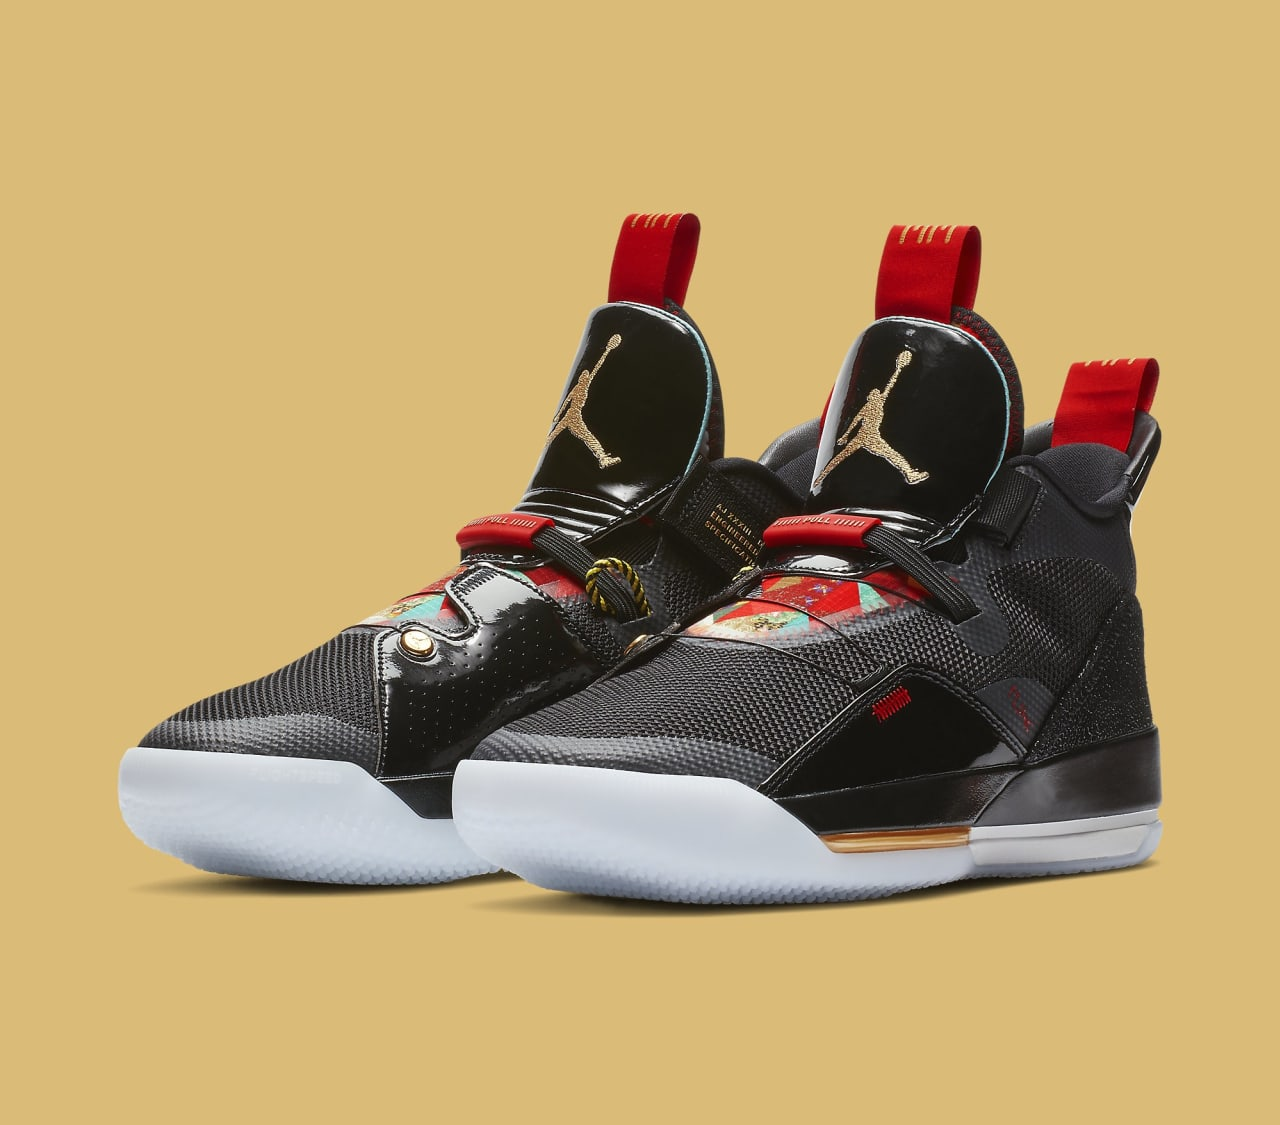 b6fb059f82ff85 Here s An Official Look At the  Chinese New Year  Air Jordan 33